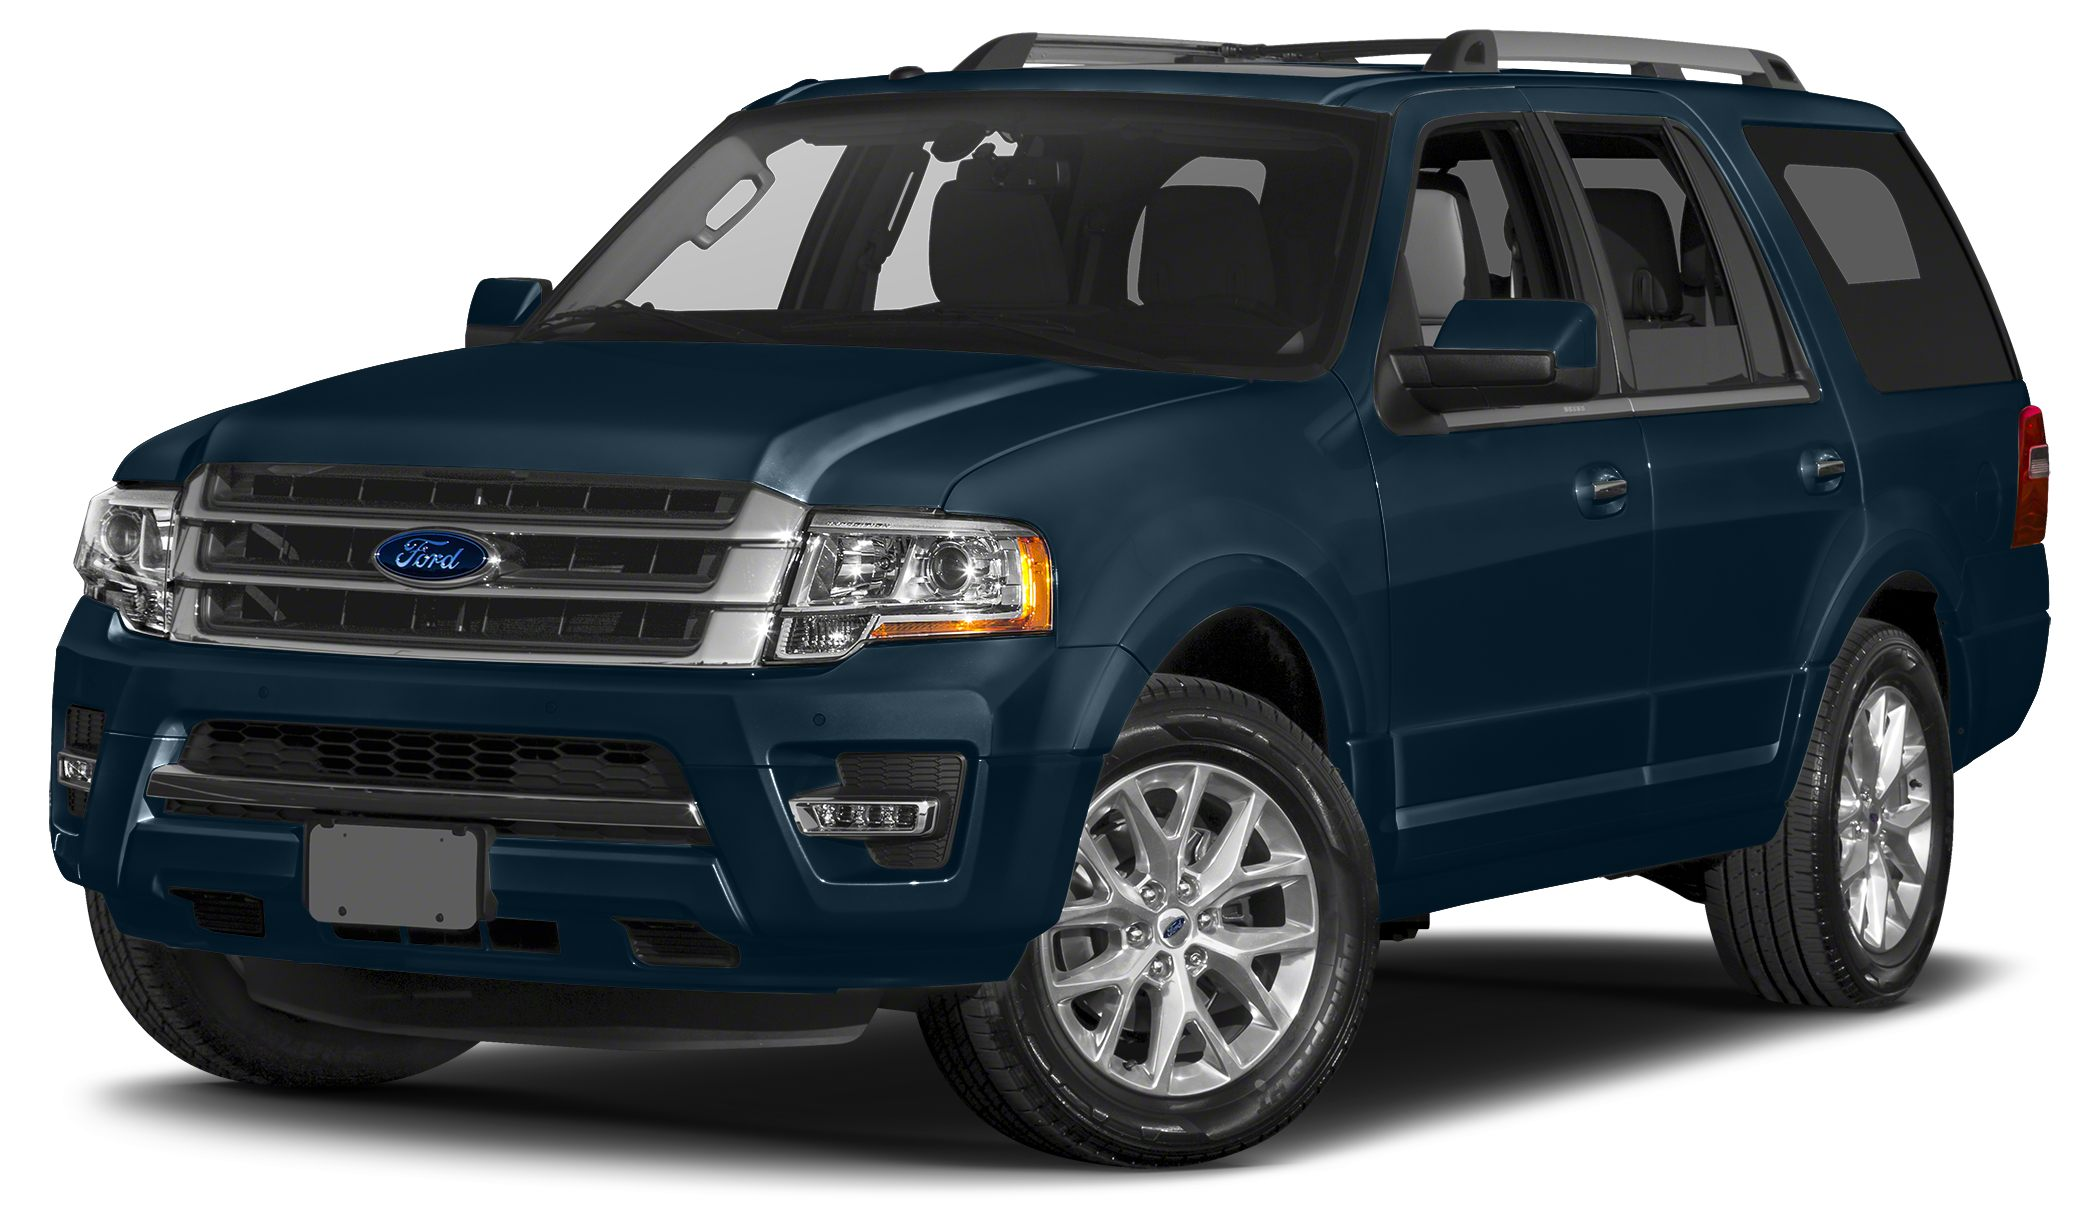 2017 Ford Expedition Limited Here at Lake Keowee Ford our customers come first and our prices will